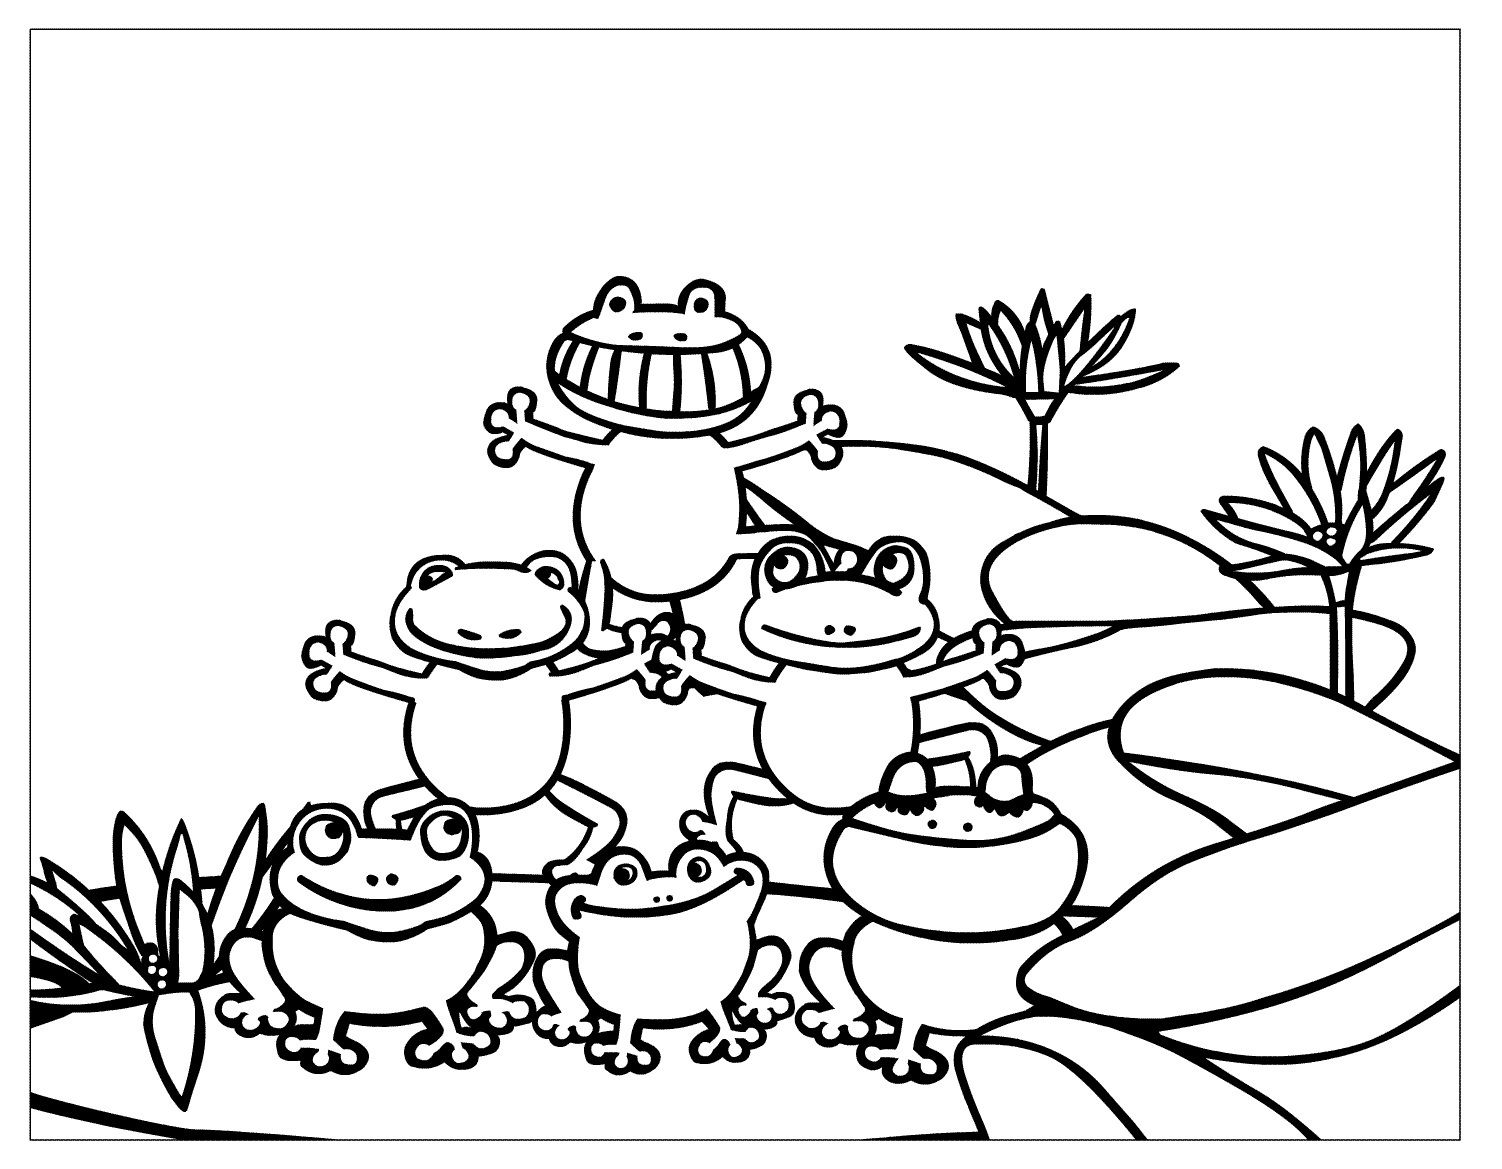 open water lily coloring page - Google Search | Digi\'s, characters ...